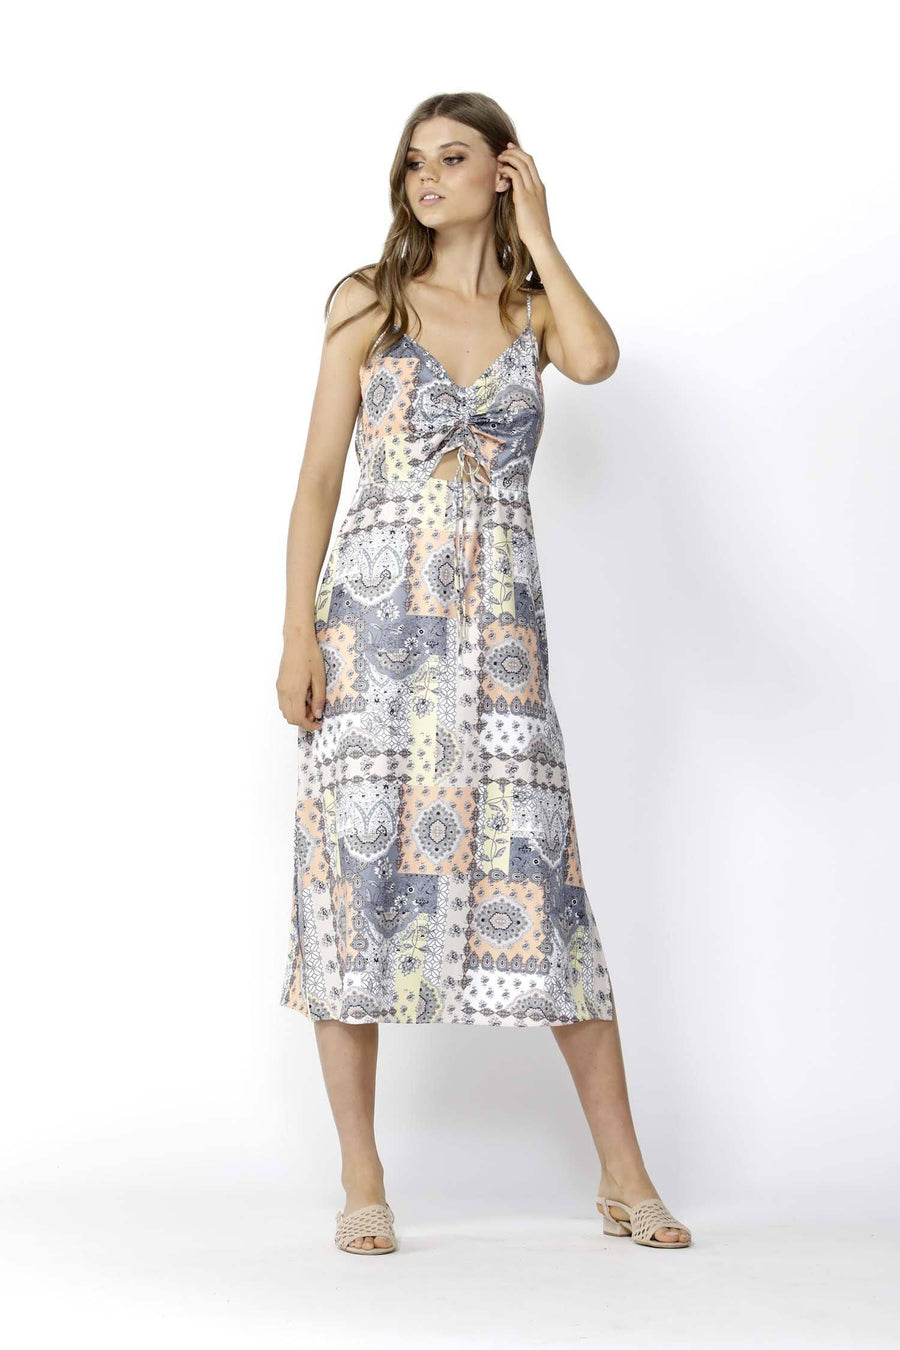 Lost in Lisbon Peekaboo Dress